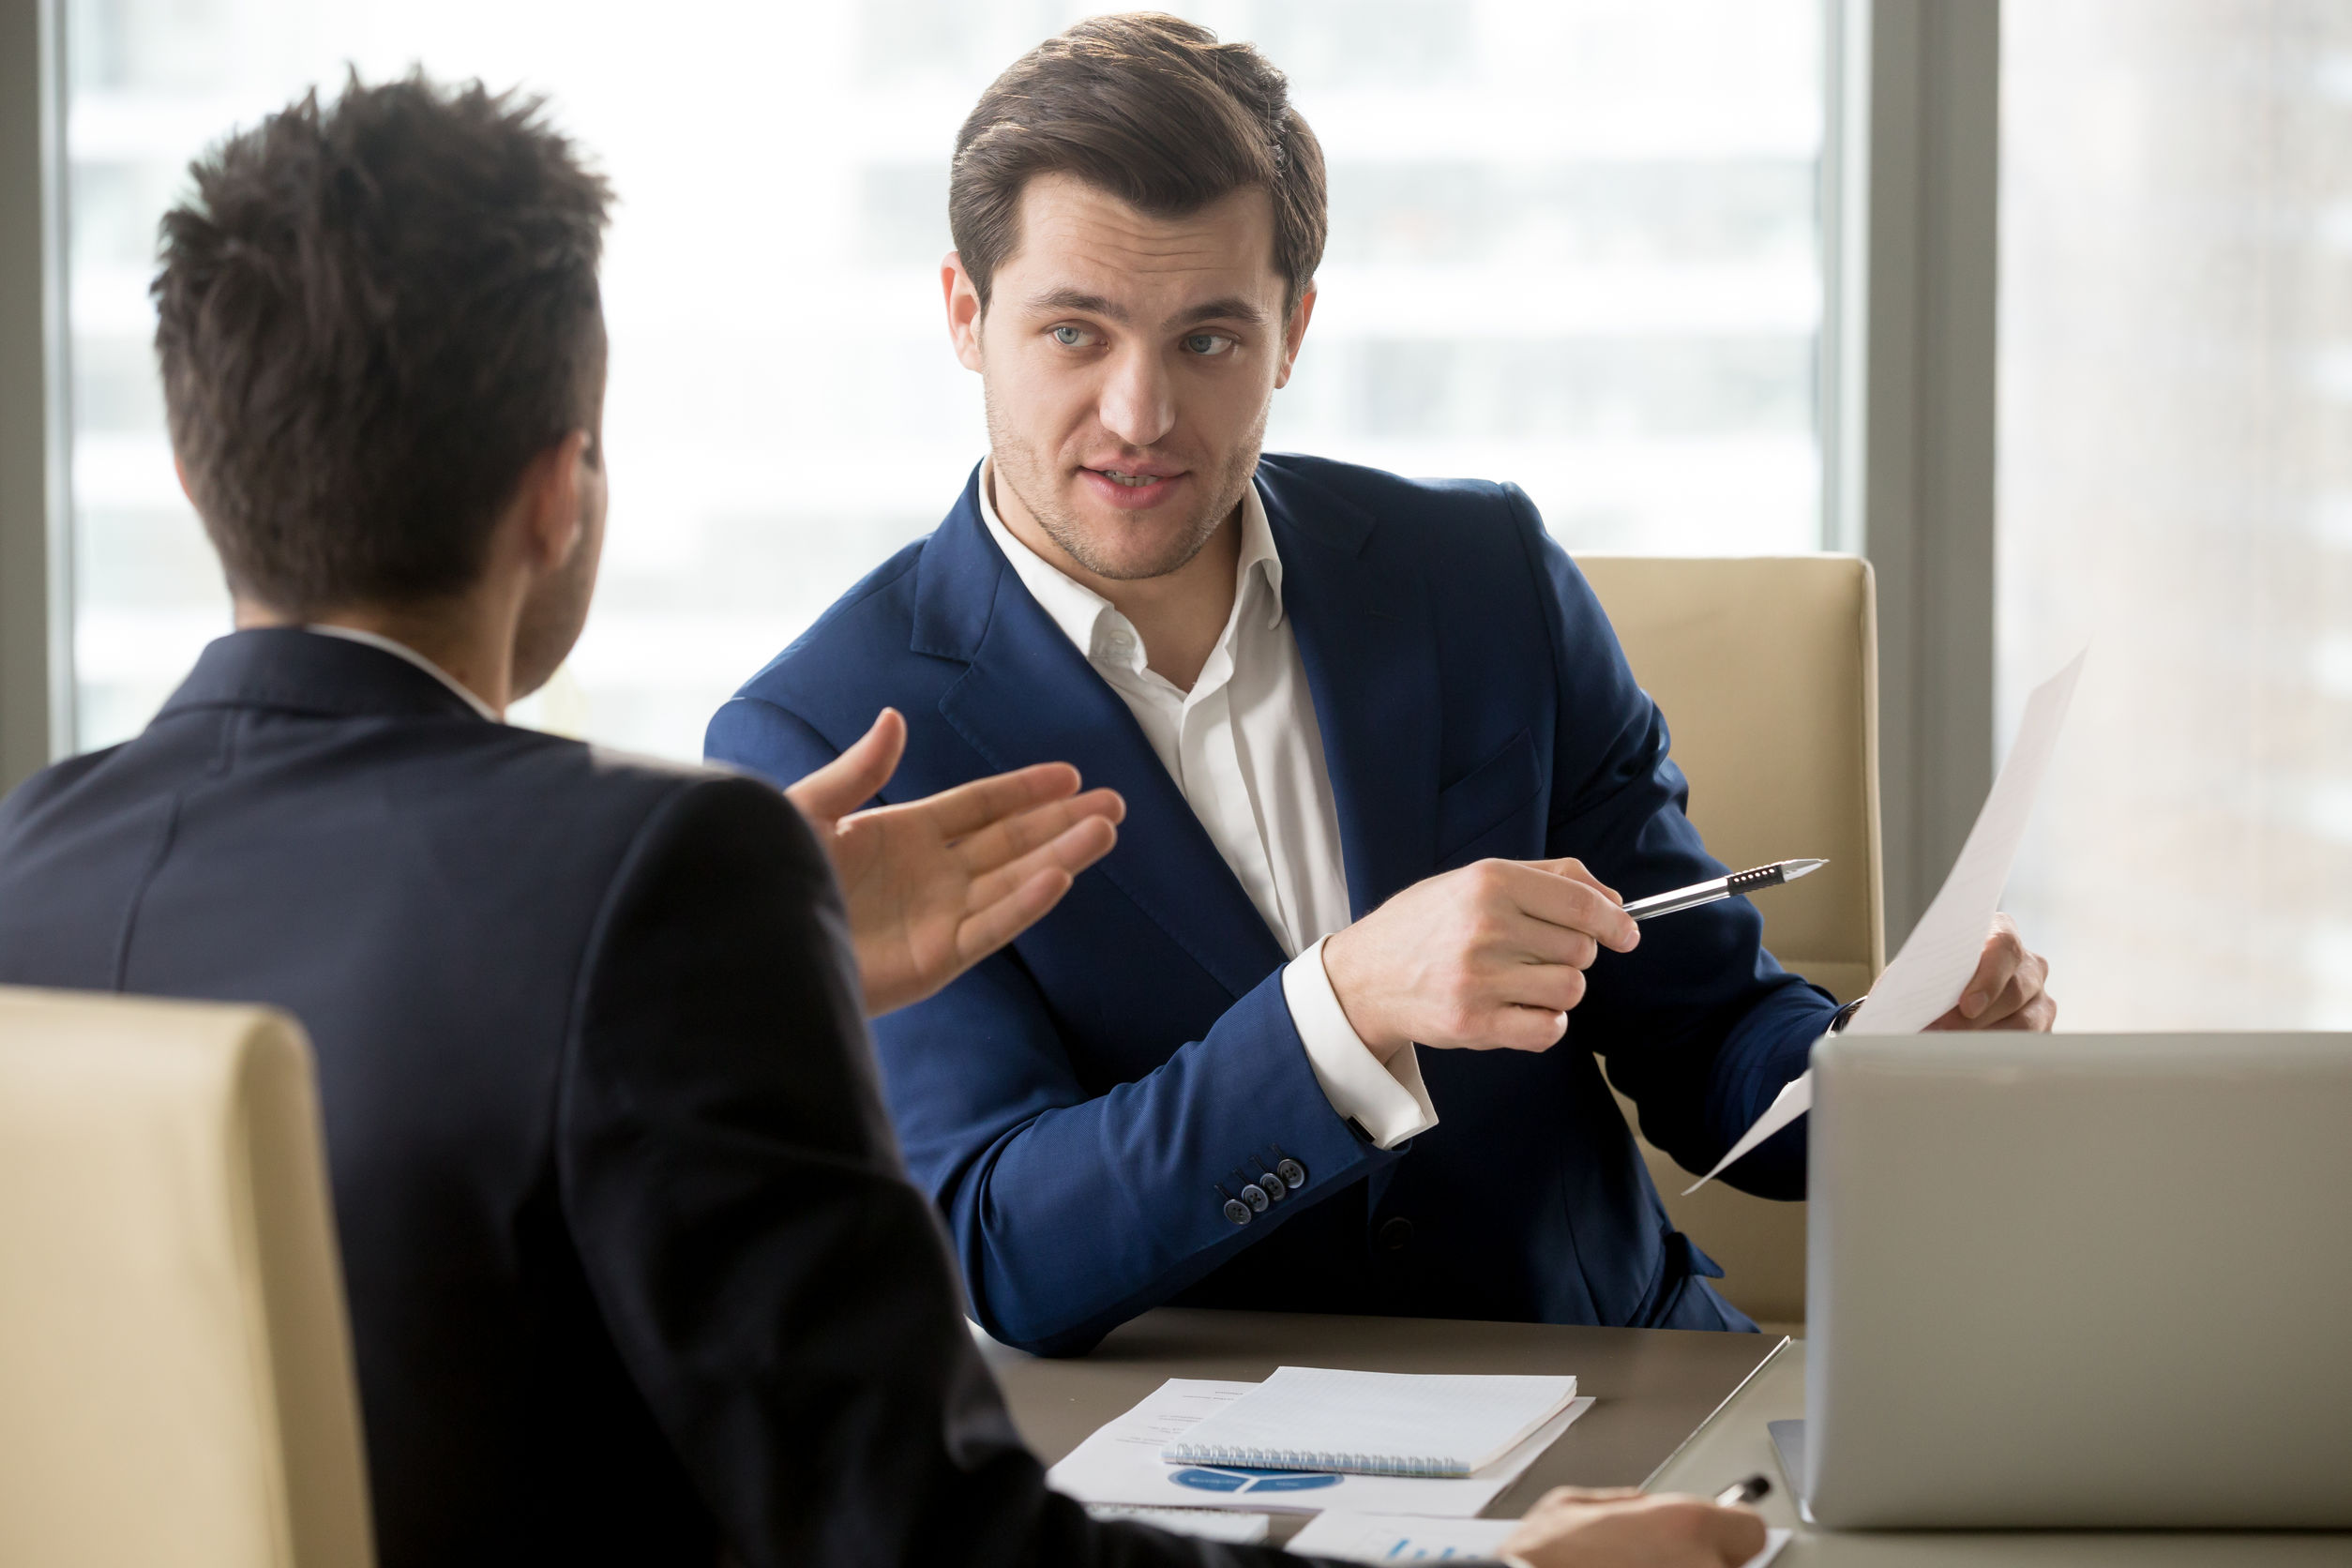 How to conduct a disciplinary hearing